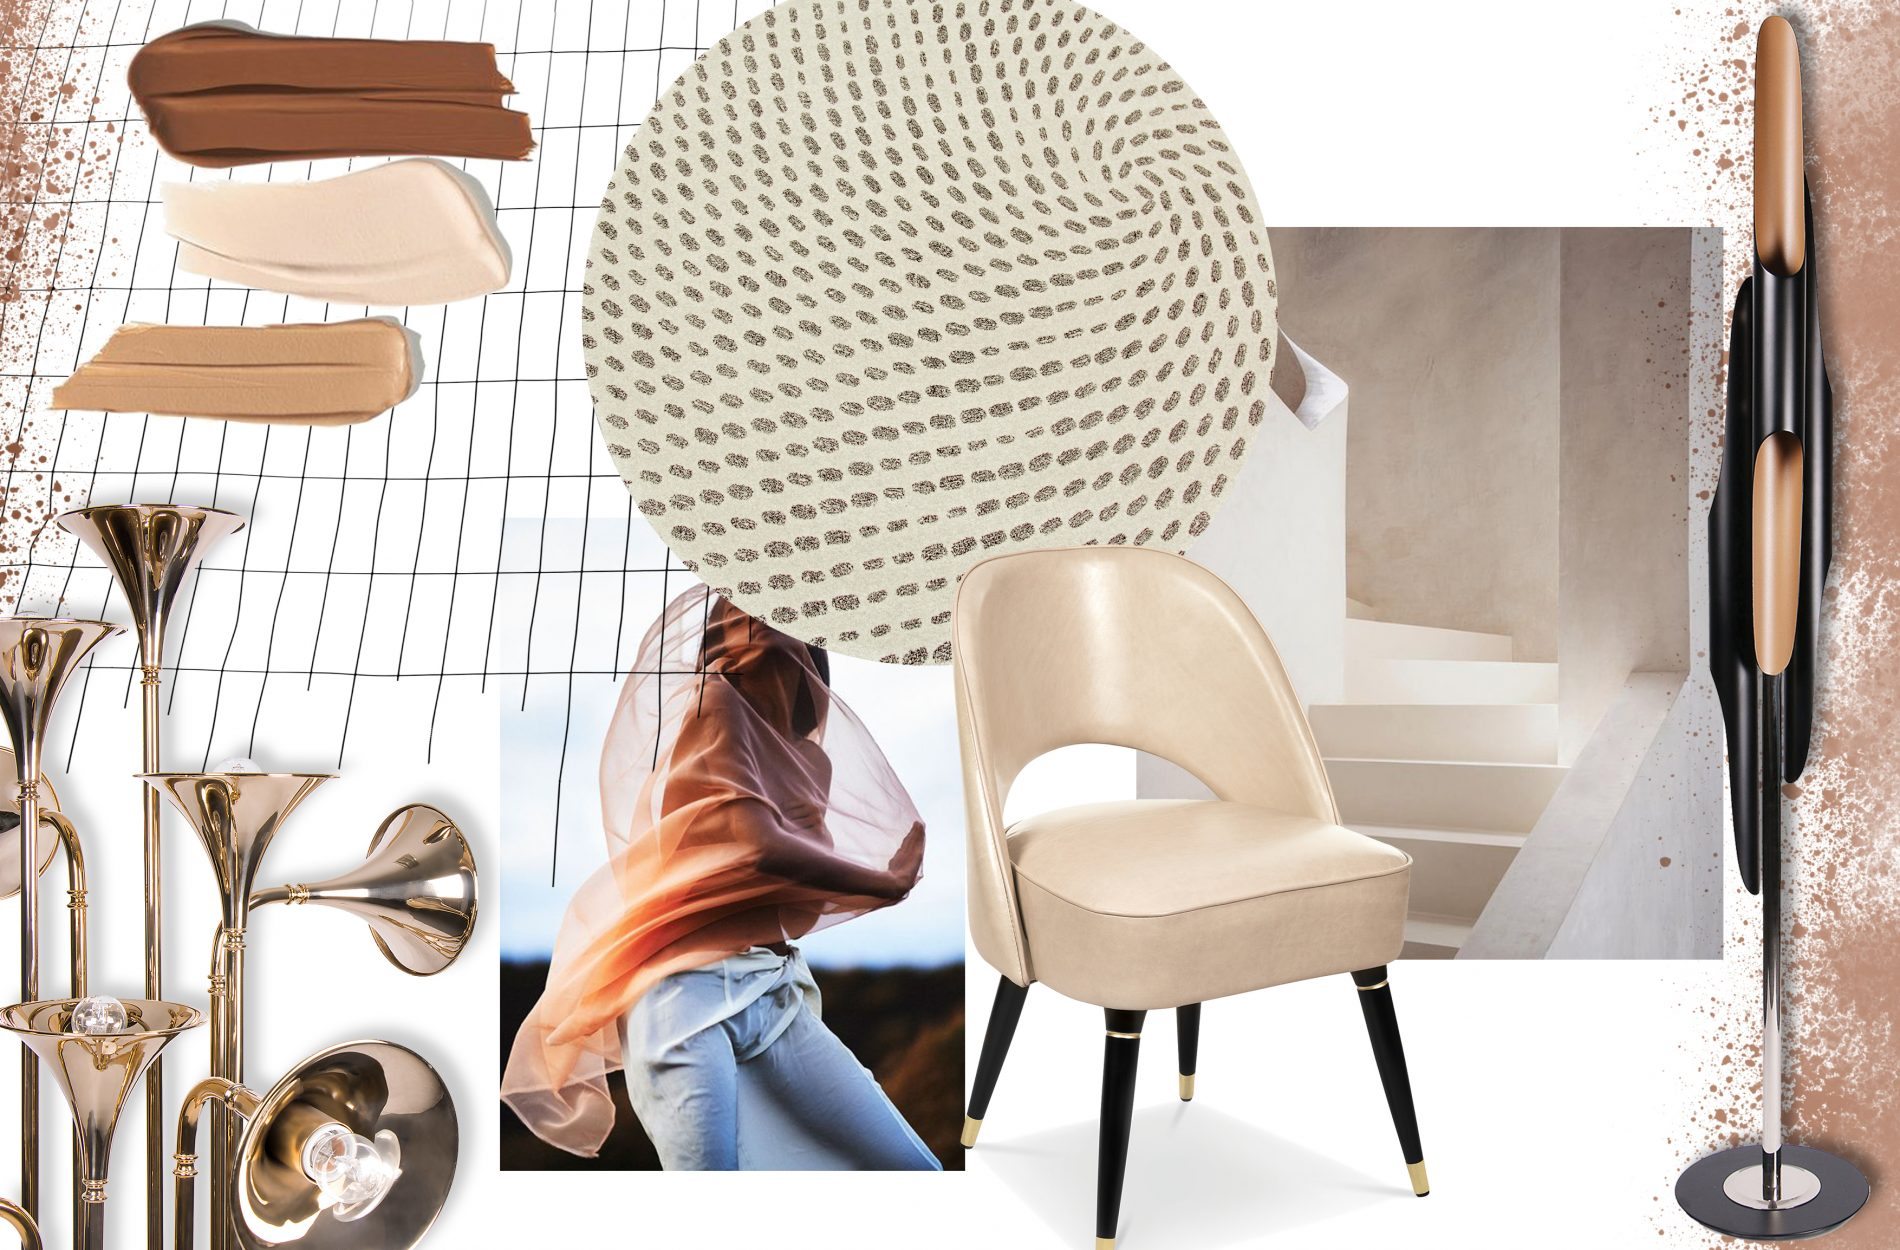 DL - Moodboard Trends Neutrals 2 - Cafe Latte